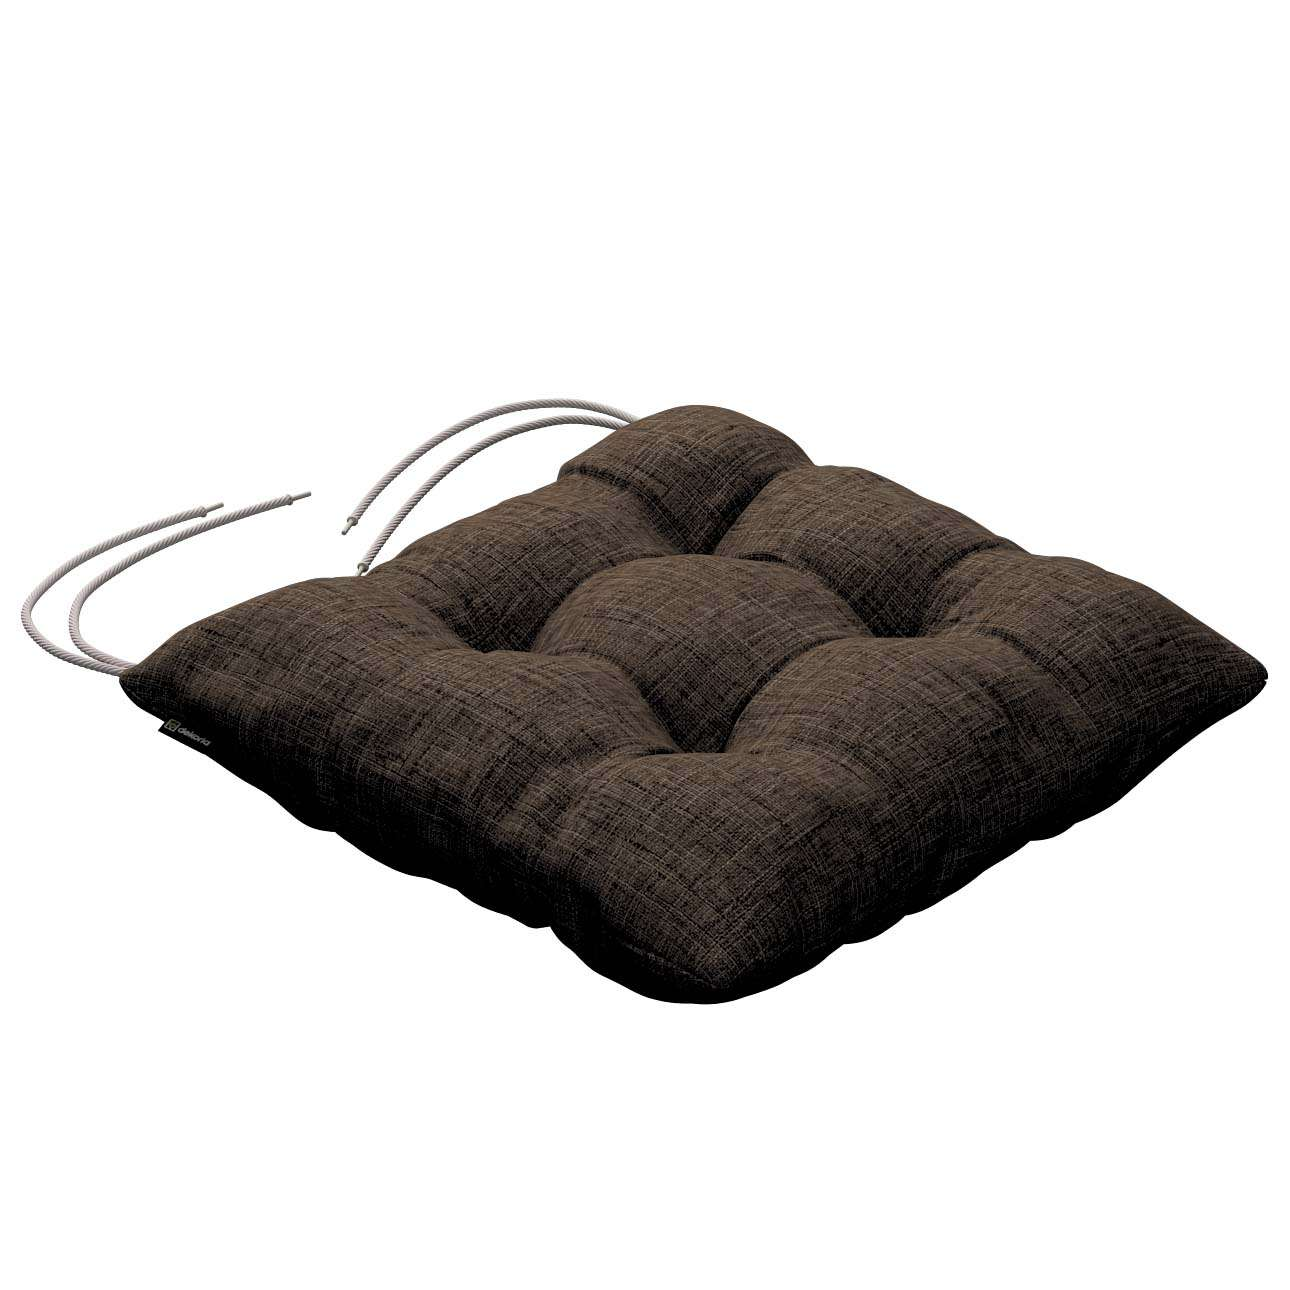 Jack seat pad with ties in collection Living, fabric: 106-92